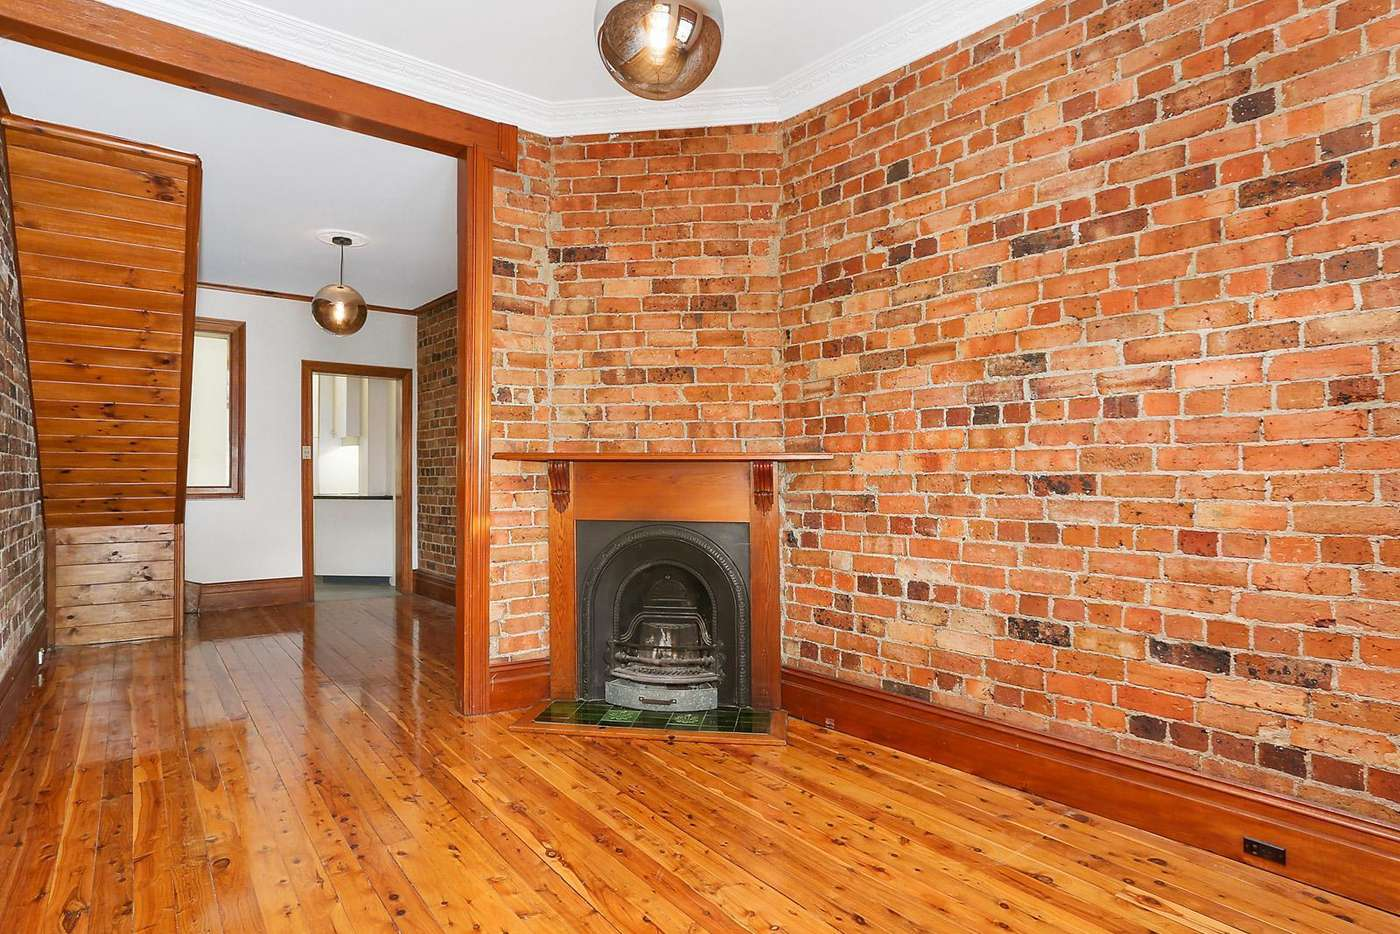 Main view of Homely house listing, 167 Evans Street, Rozelle NSW 2039